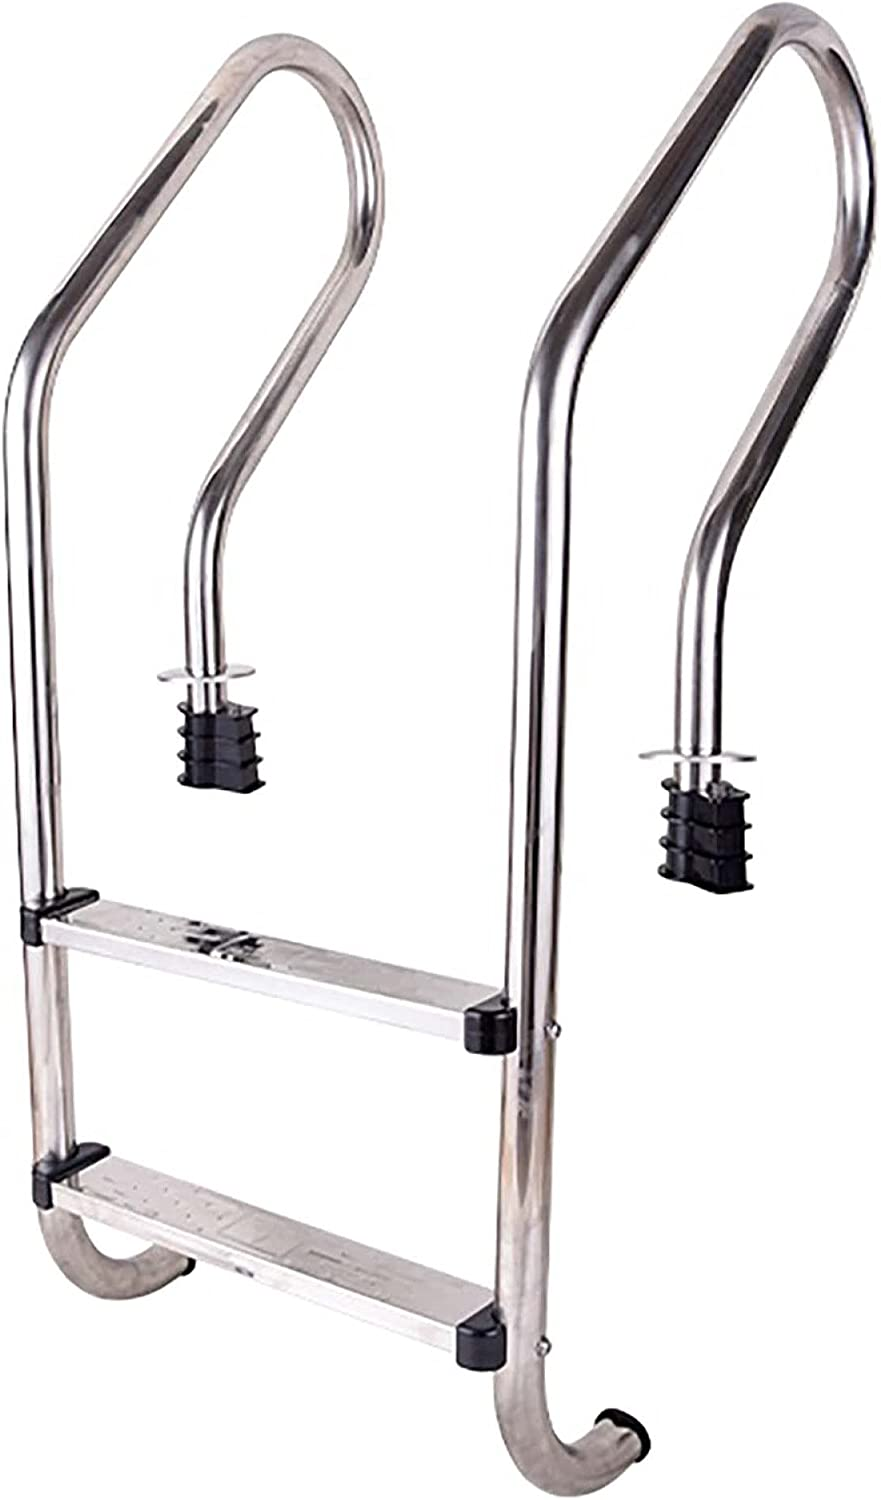 Swimming Pool Handrails 304 Stainless Bombing free shipping Steel Steps Max 59% OFF